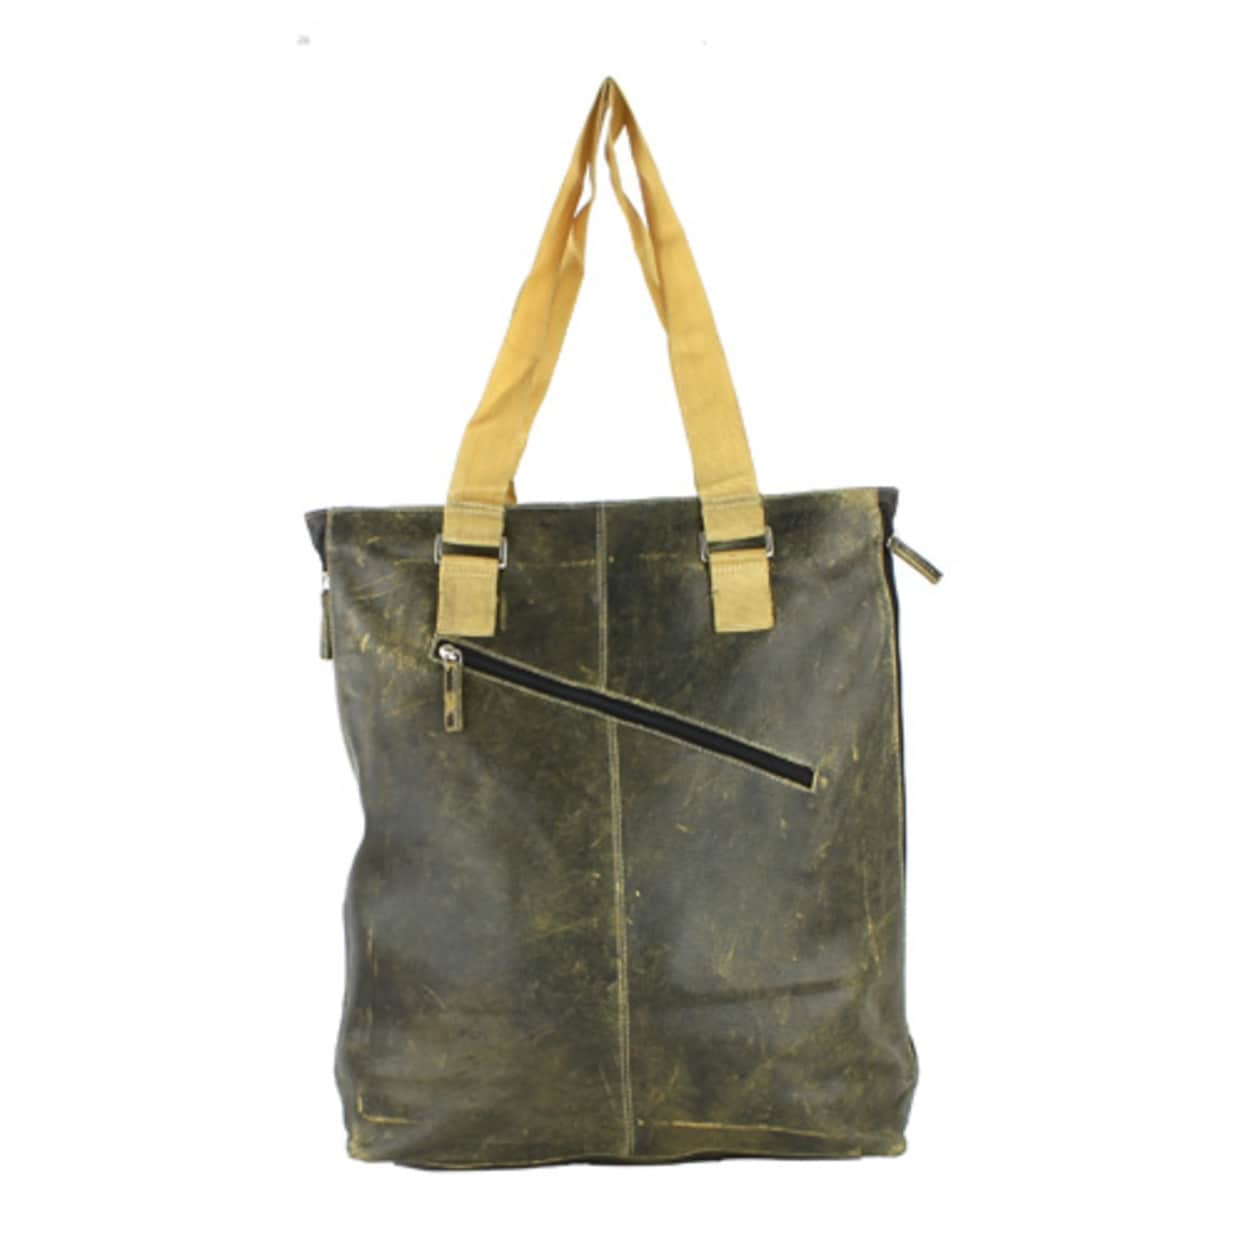 Distressed Leather Tote Bag Free Shipping On Orders Over 45 23489043